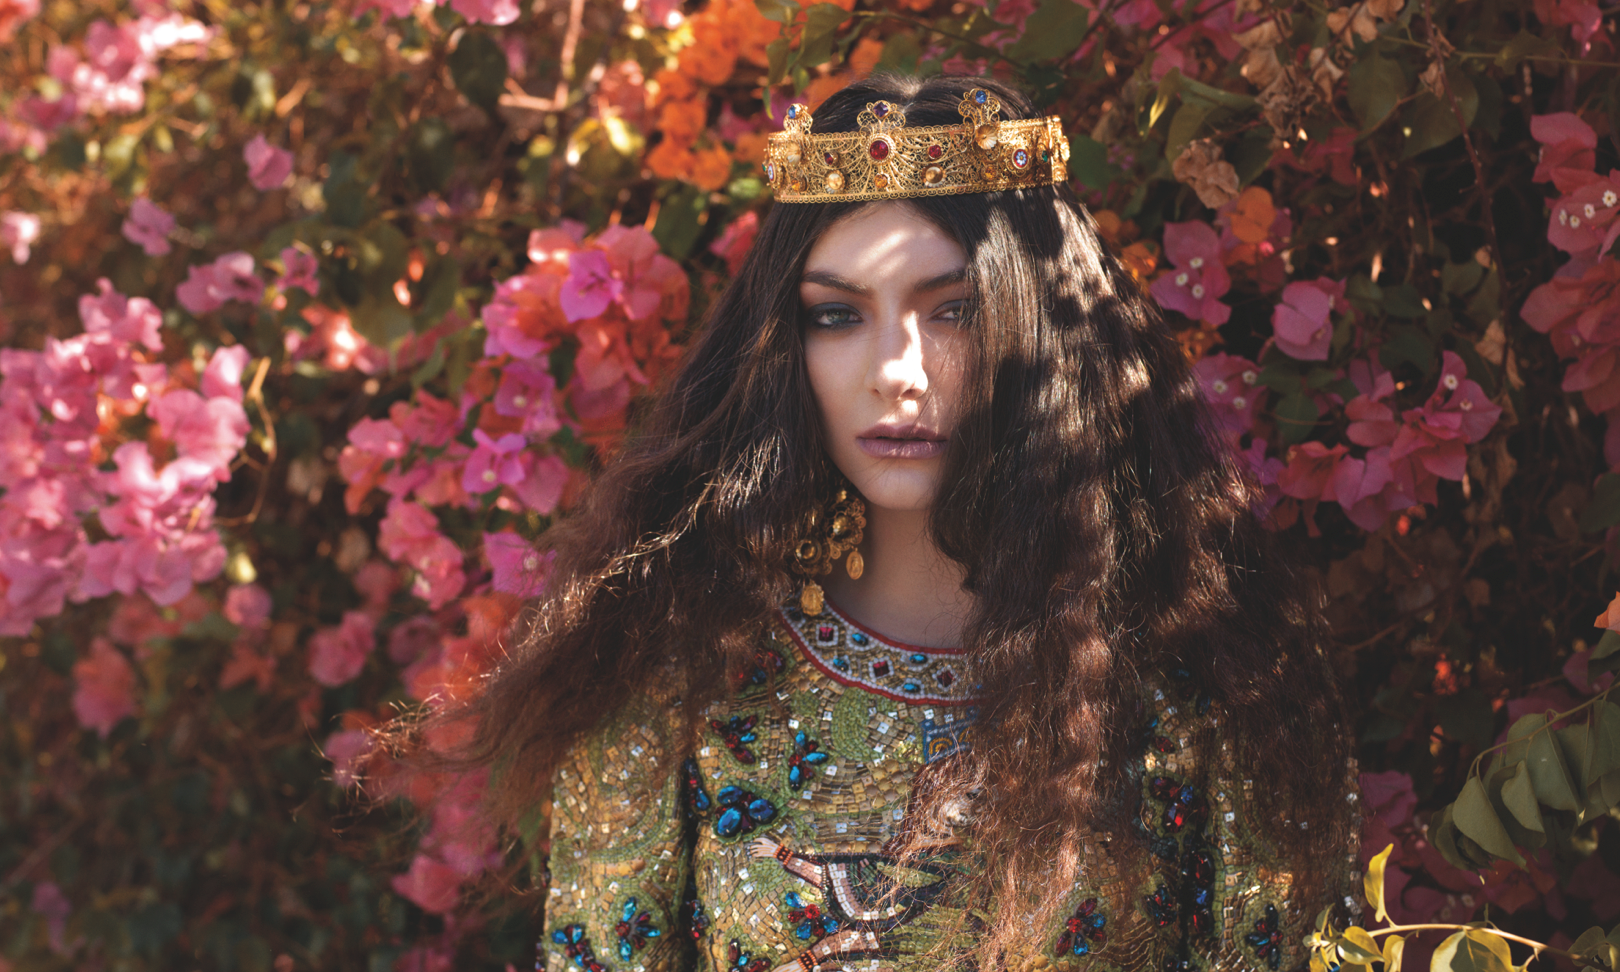 Lorde announces new US Tour beginning in August.